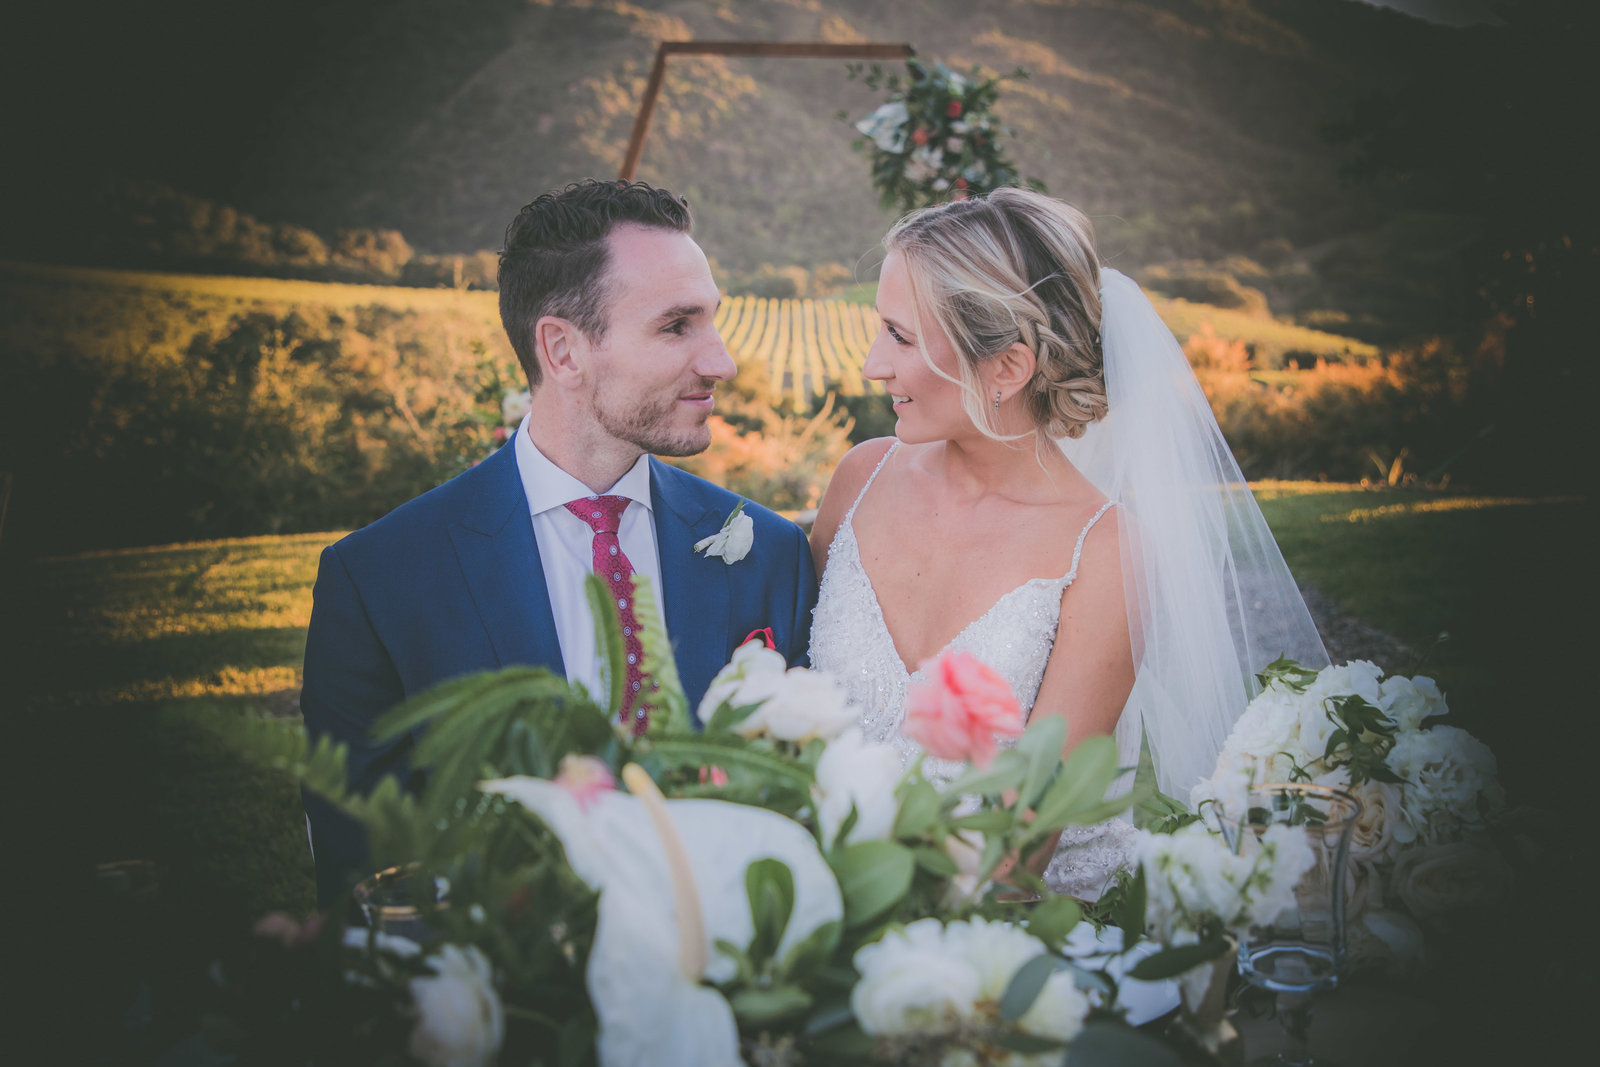 Bride and groom smile at each other at table during sunset in Carmel Highlands.